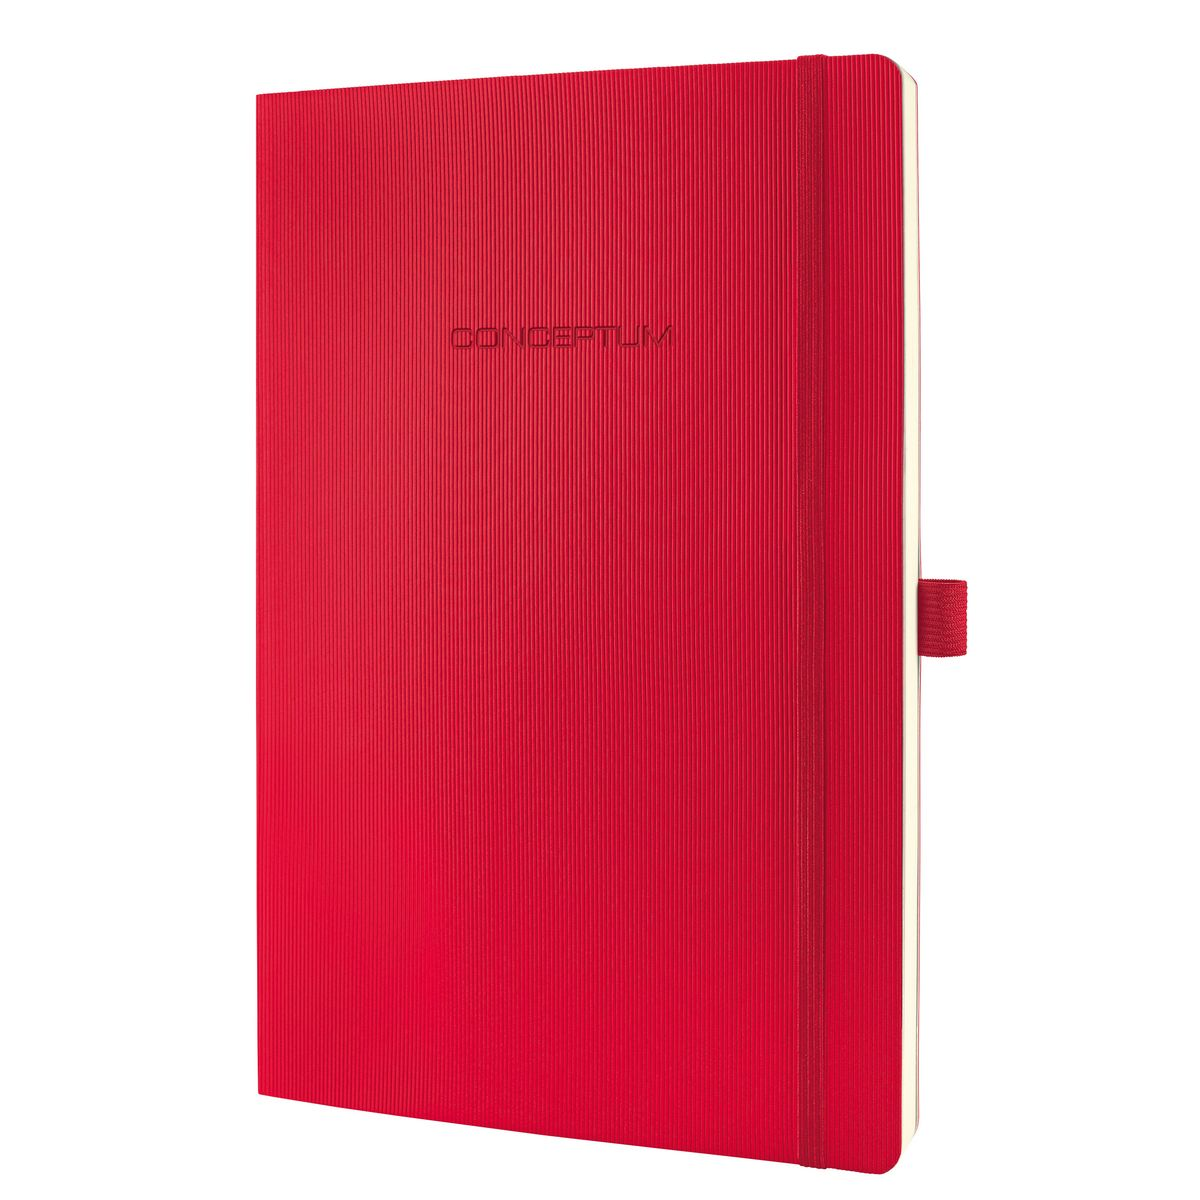 CONCEPTUM Softcover 187x270x14mm RD